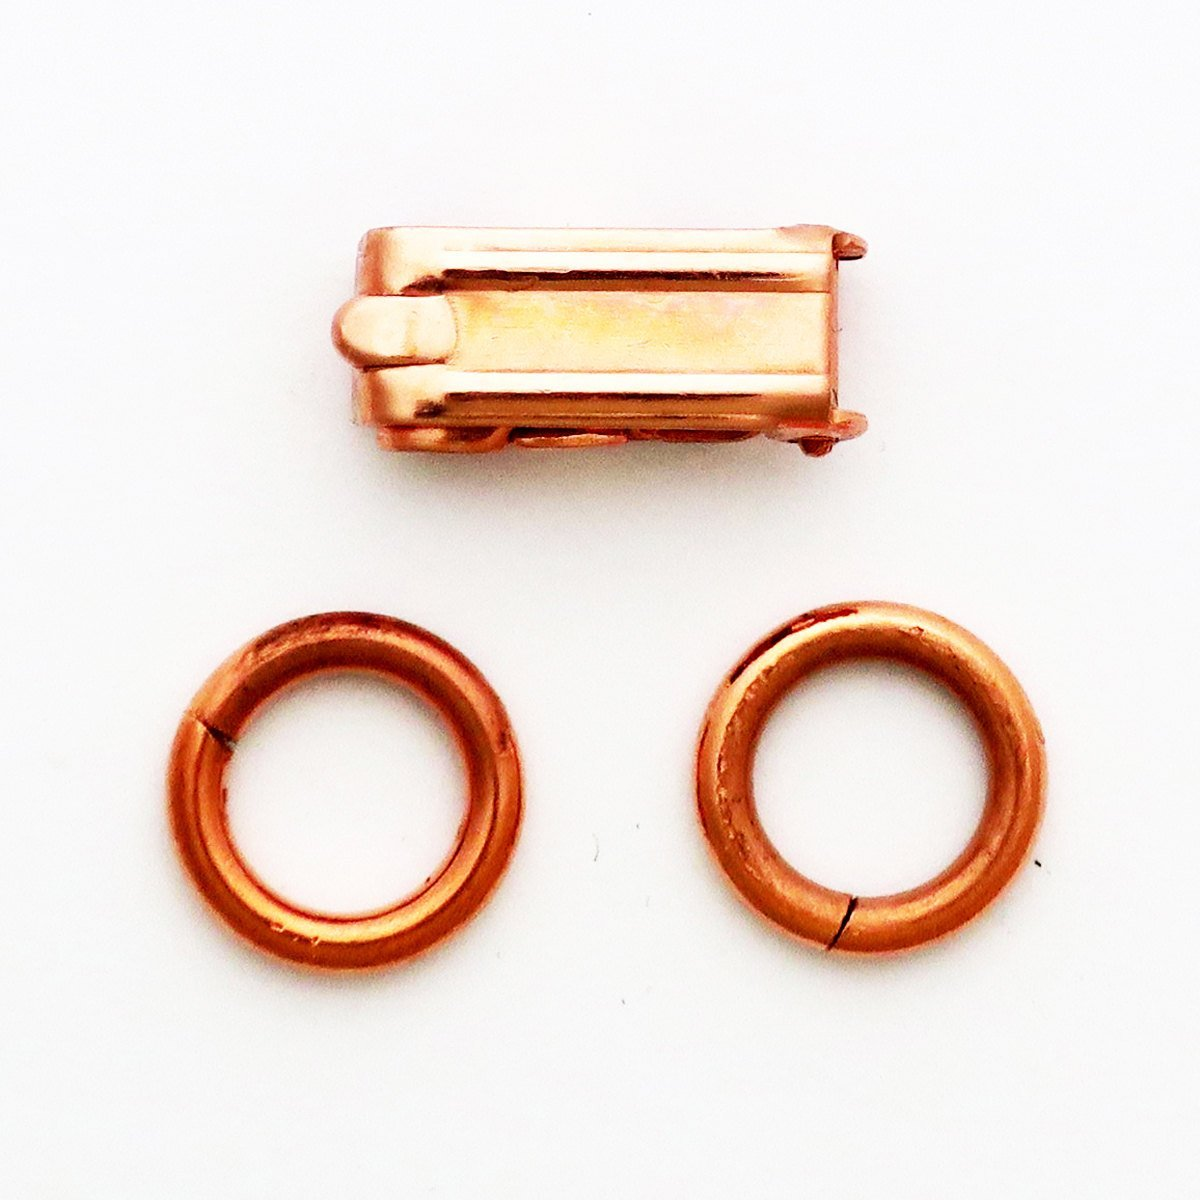 Heavy Fold Over Copper Clasp Repair Kit 6x14 mm Single Solid Copper Clasp Kit with 2 Rings celtic-copper-jewelry.myshopify.com